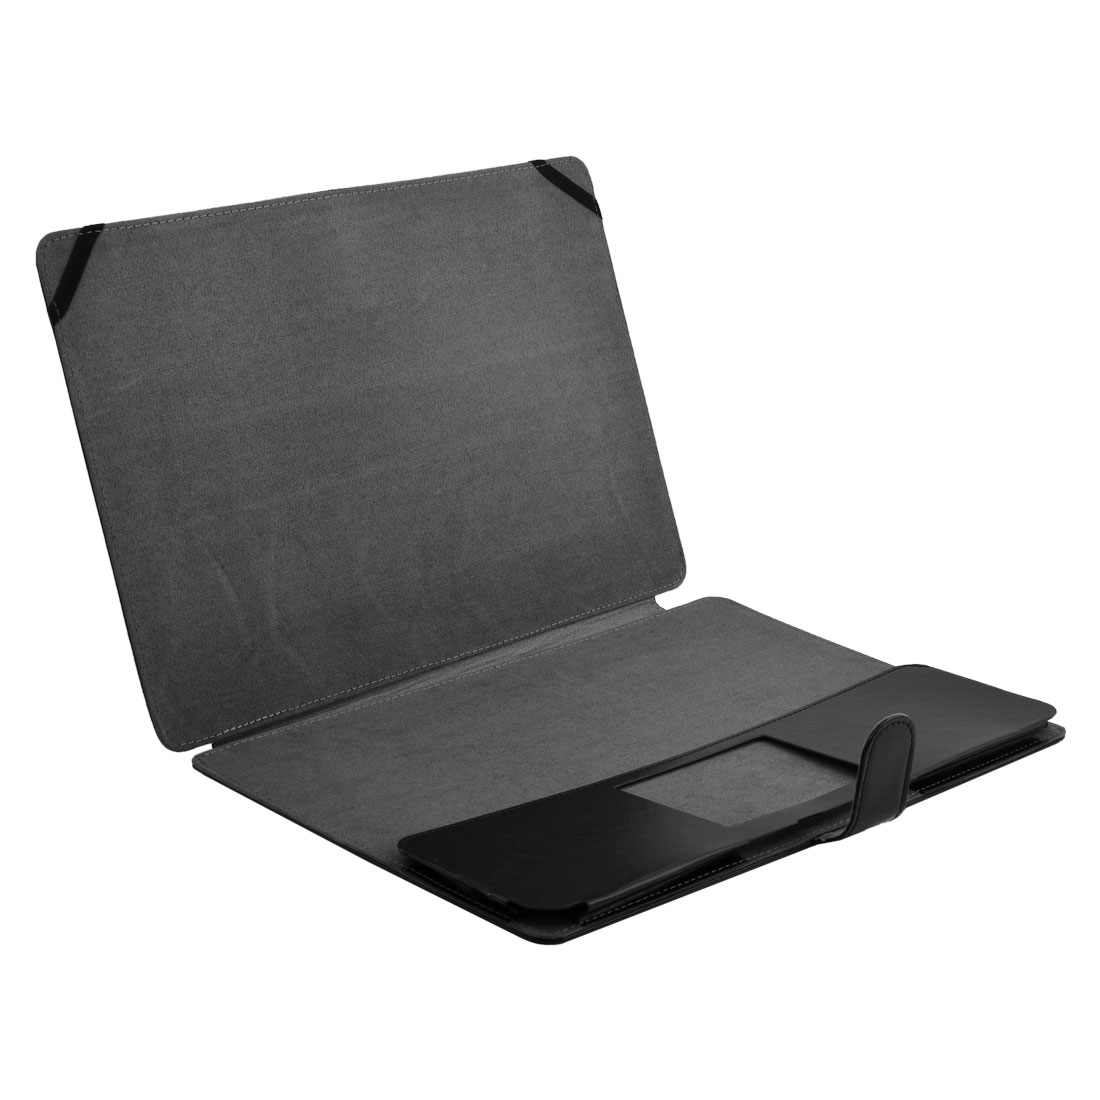 Office PU Leather Screen Skin Folio Laptop Sleeve Case Black for MacBook Pro 15.4 Inch